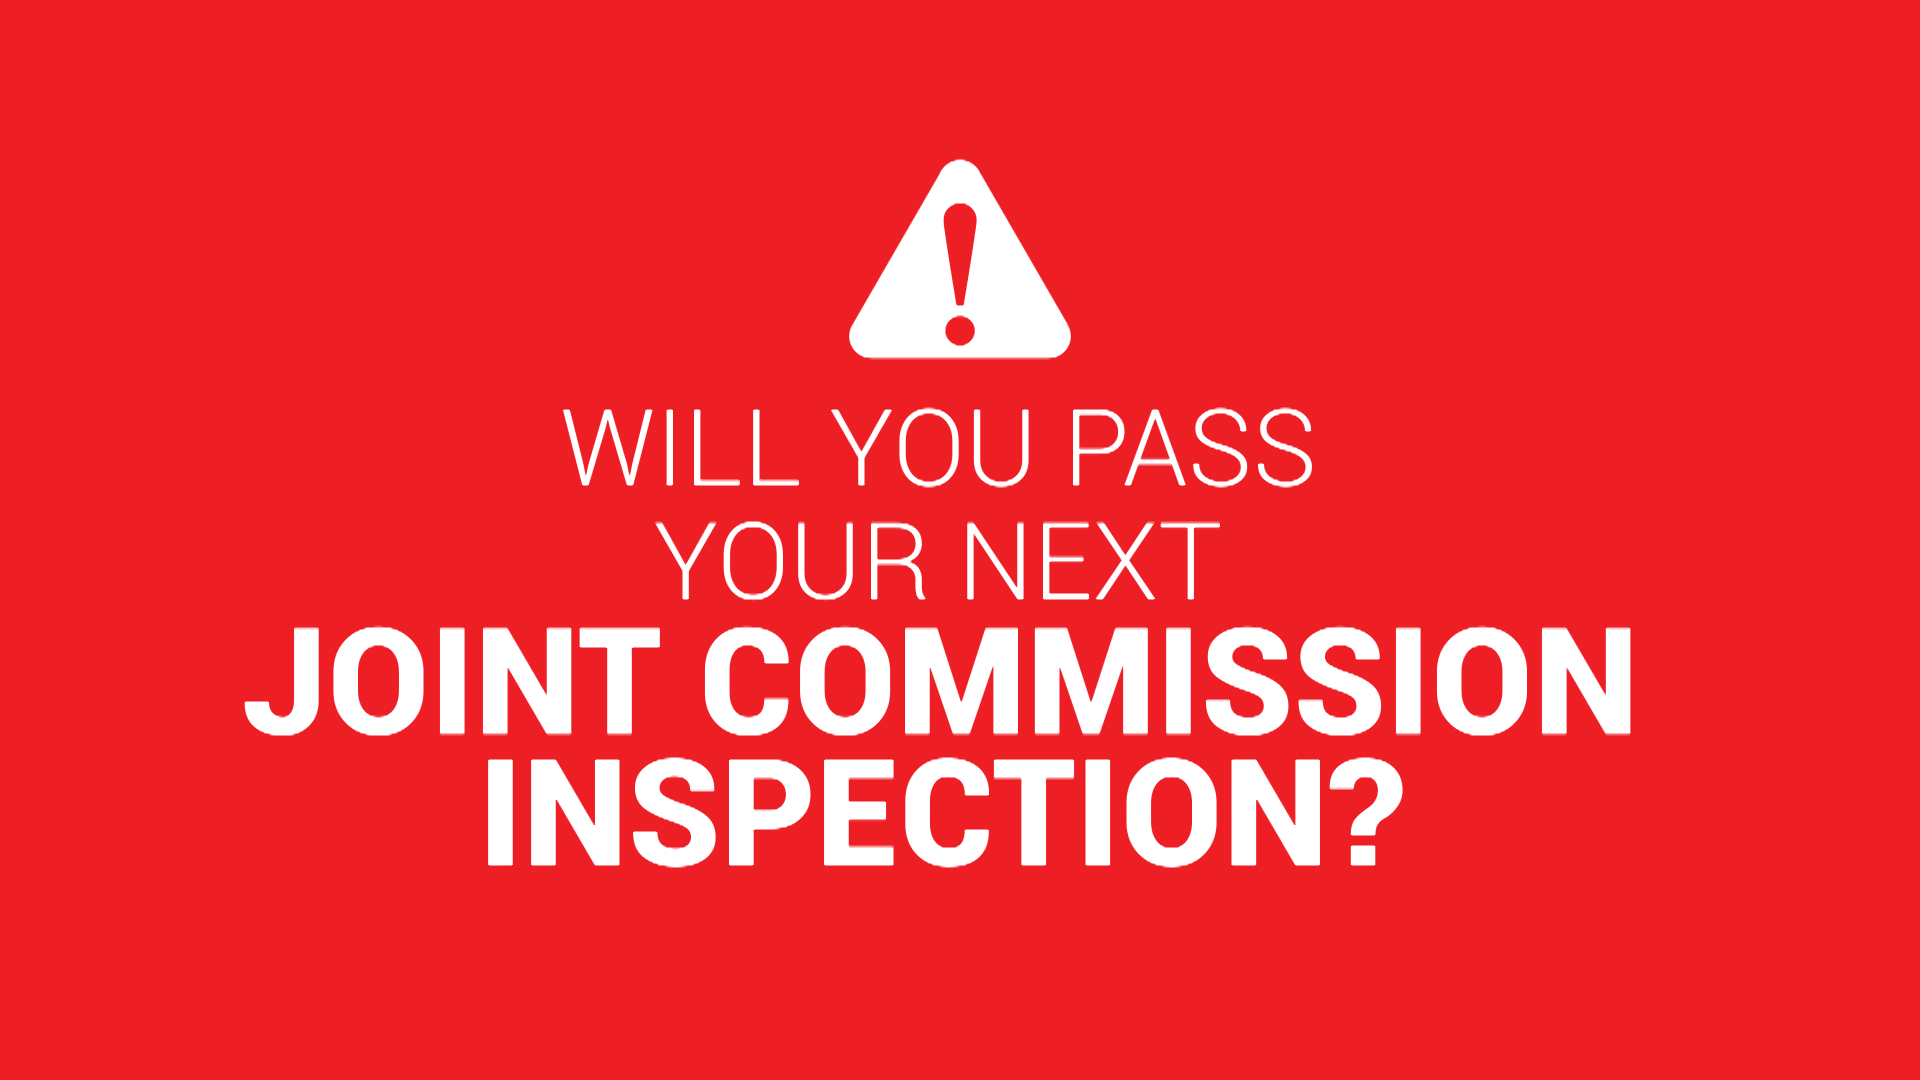 VIDEO: Will you pass your next Joint Commission inspection?